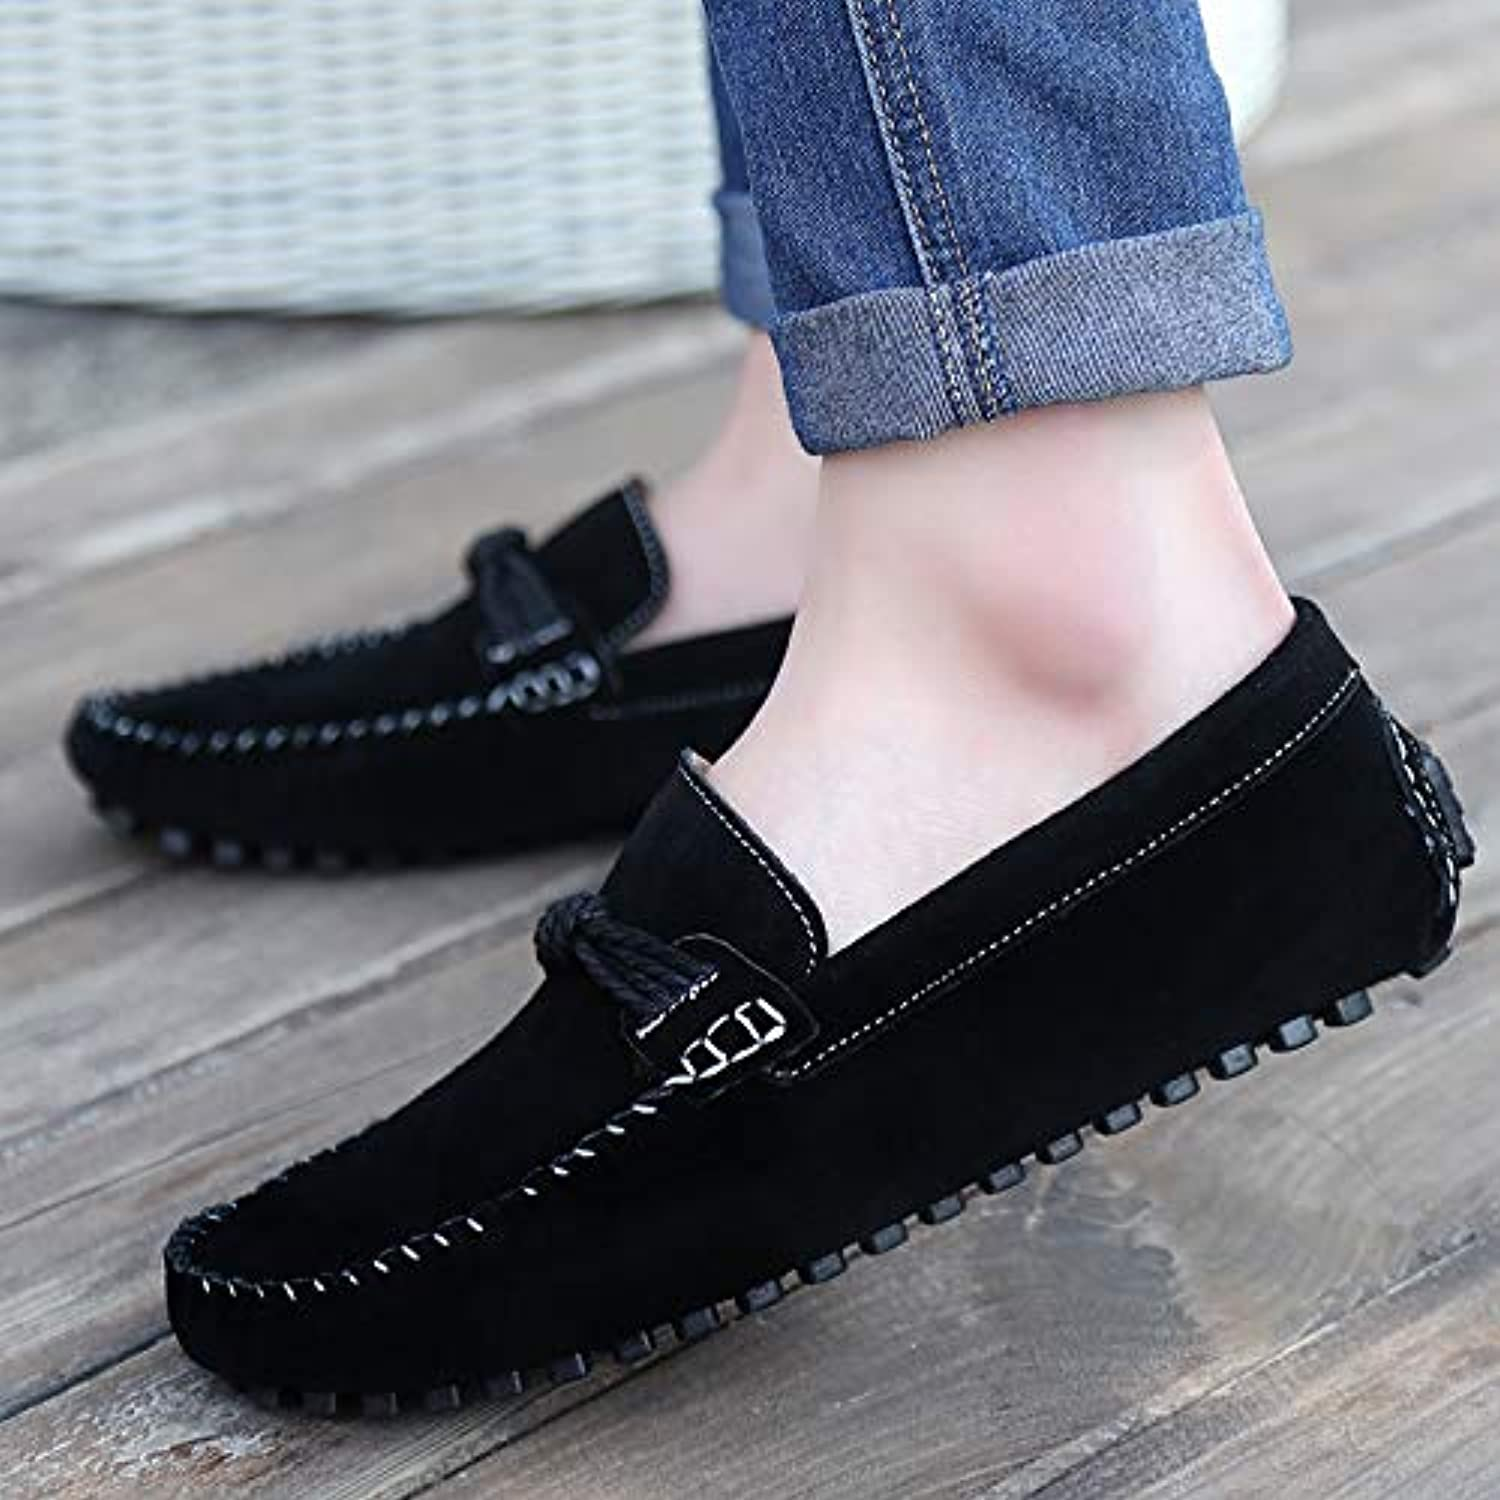 LOVDRAM Men's shoes Spring And Autumn New Men'S Daily Casual shoes Wild Leather Peas shoes Men'S Scrub Men'S shoes Driving shoes Fashion